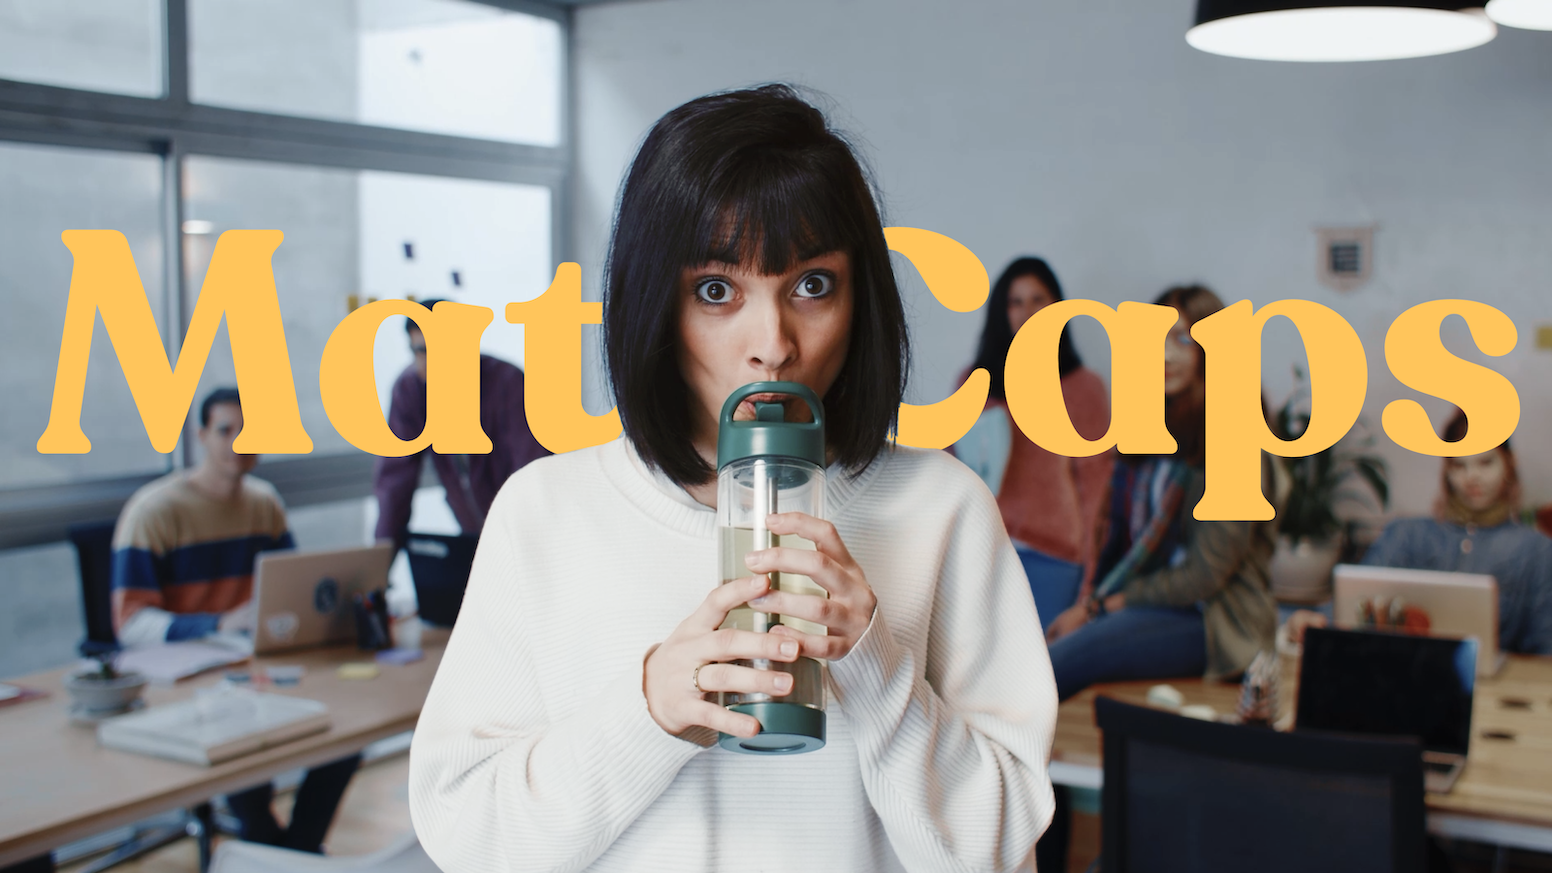 MateCaps created naked yerba mate Caps to enjoy in a multi-use reusable bottle, as a new source of energy and focus without the jitters